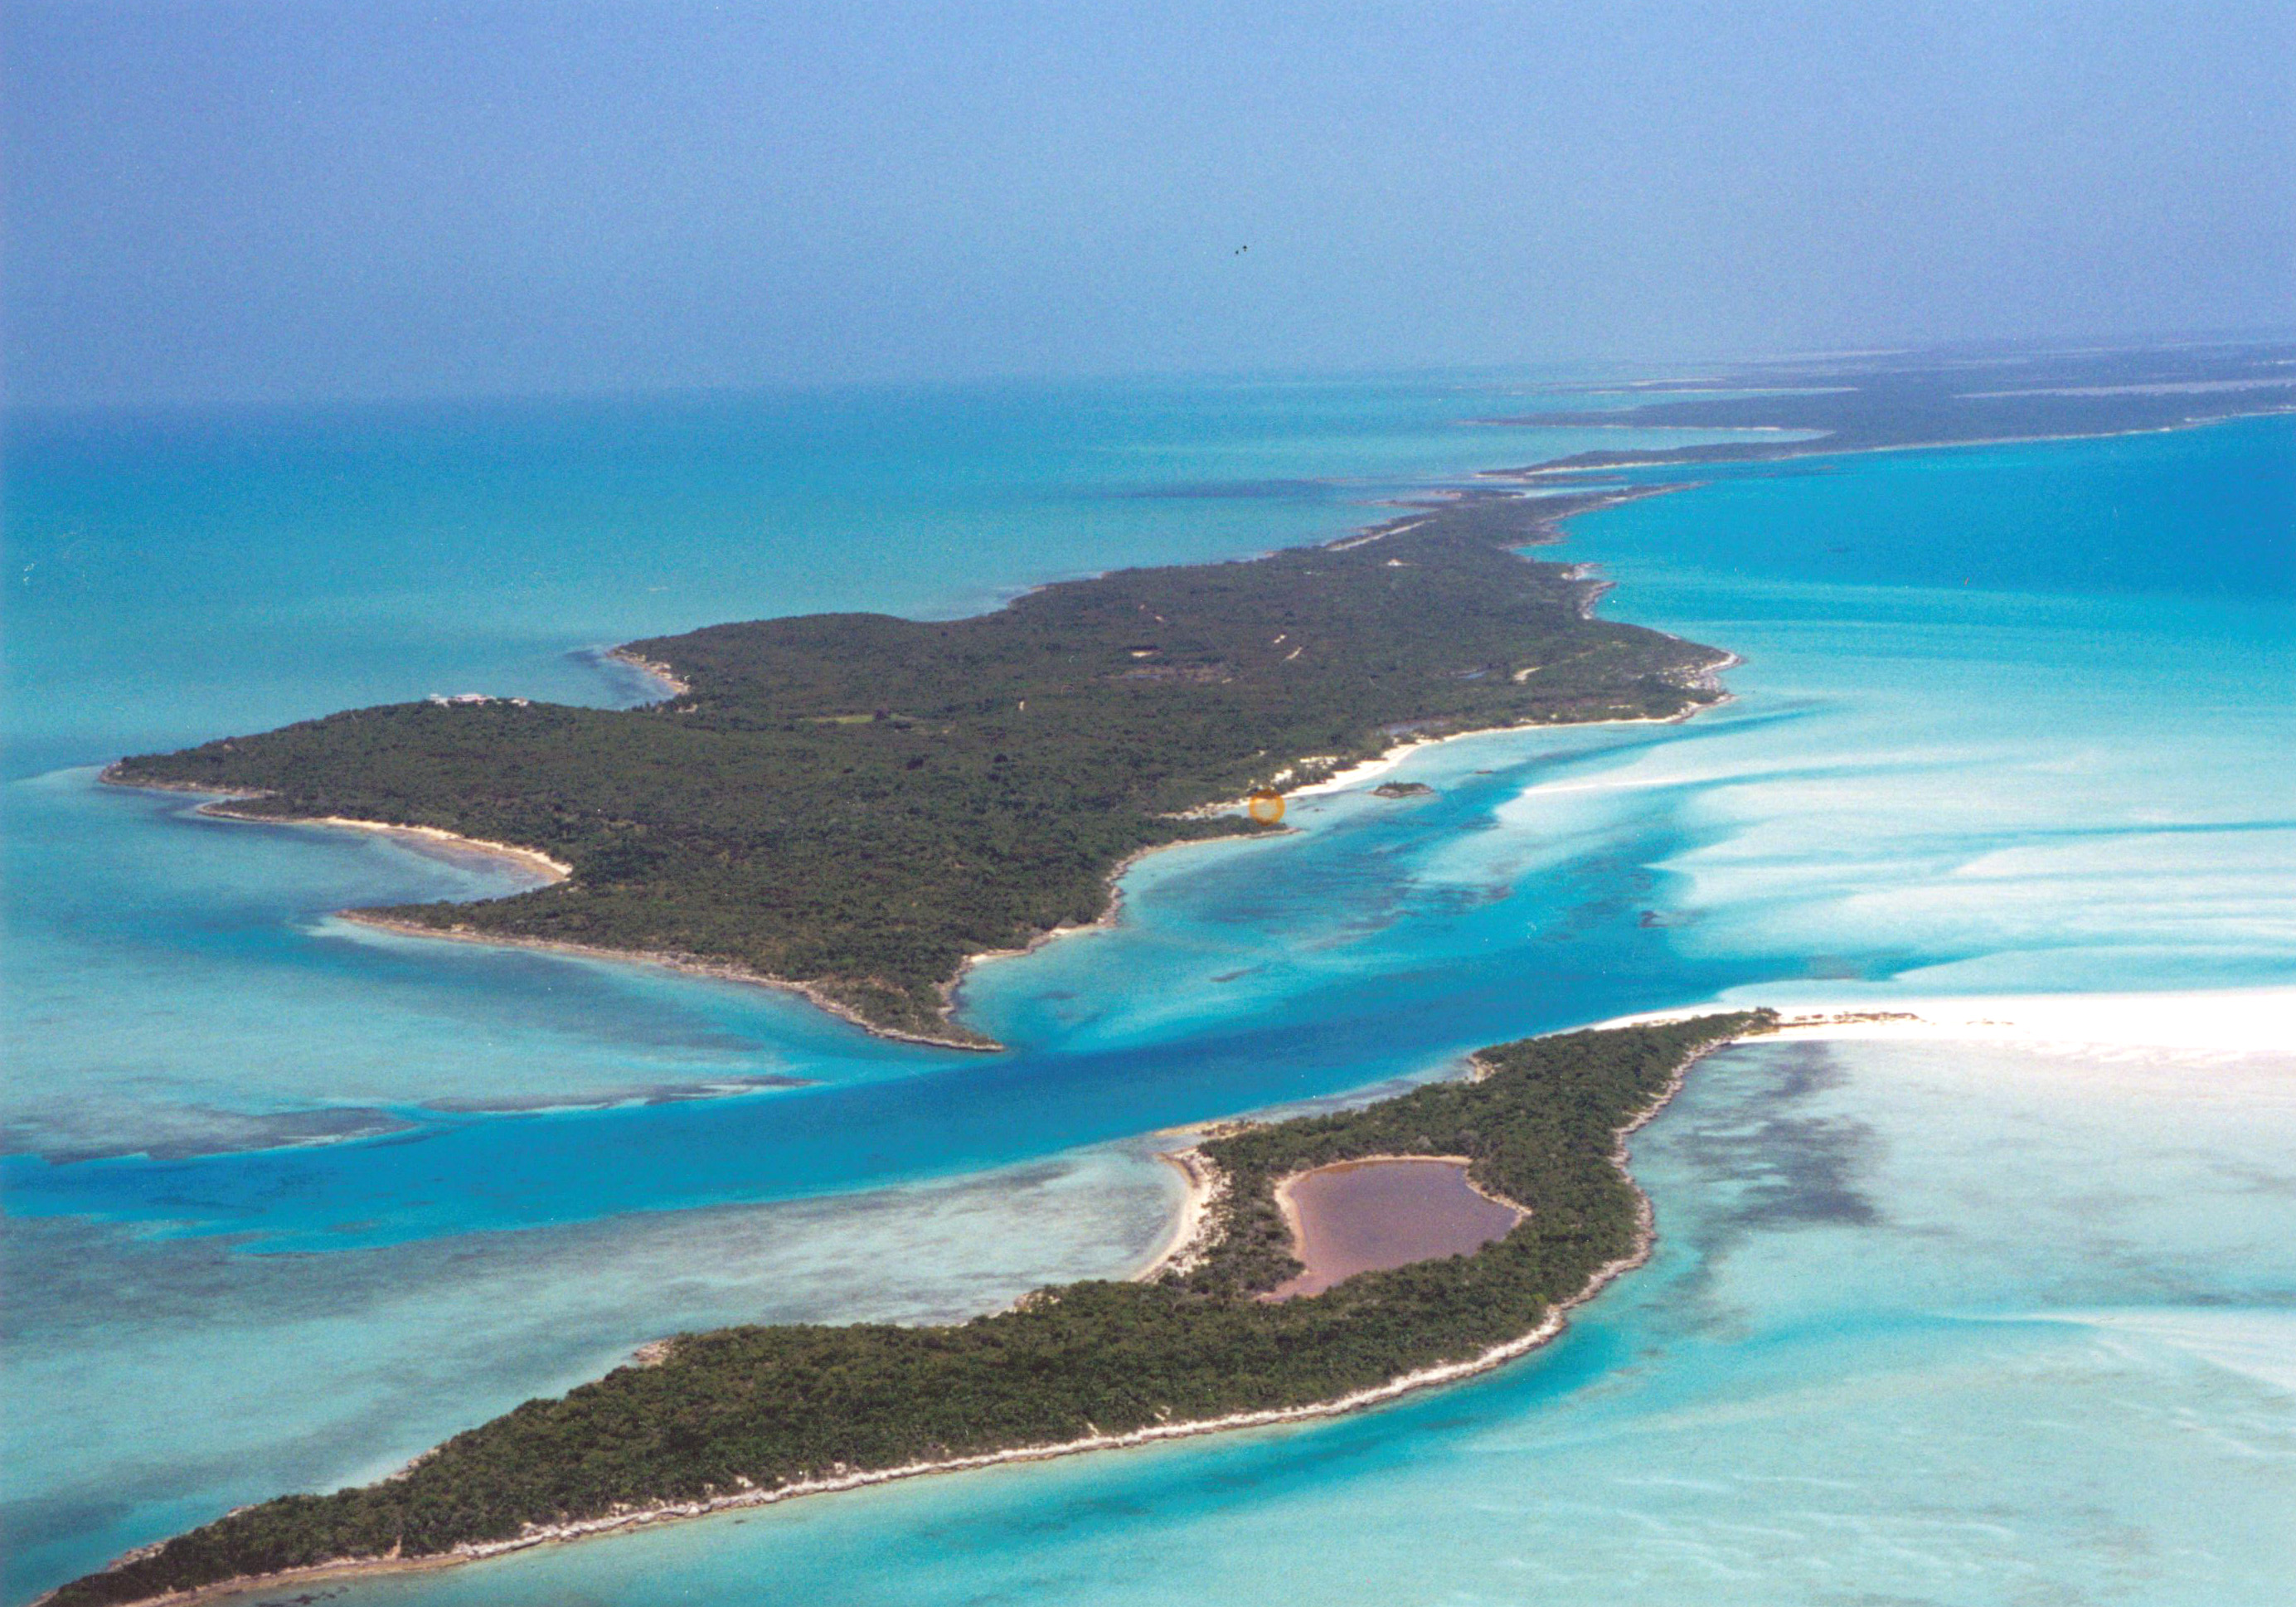 Caribbean: Bahamas' Biggest Private Island Goes To Auction